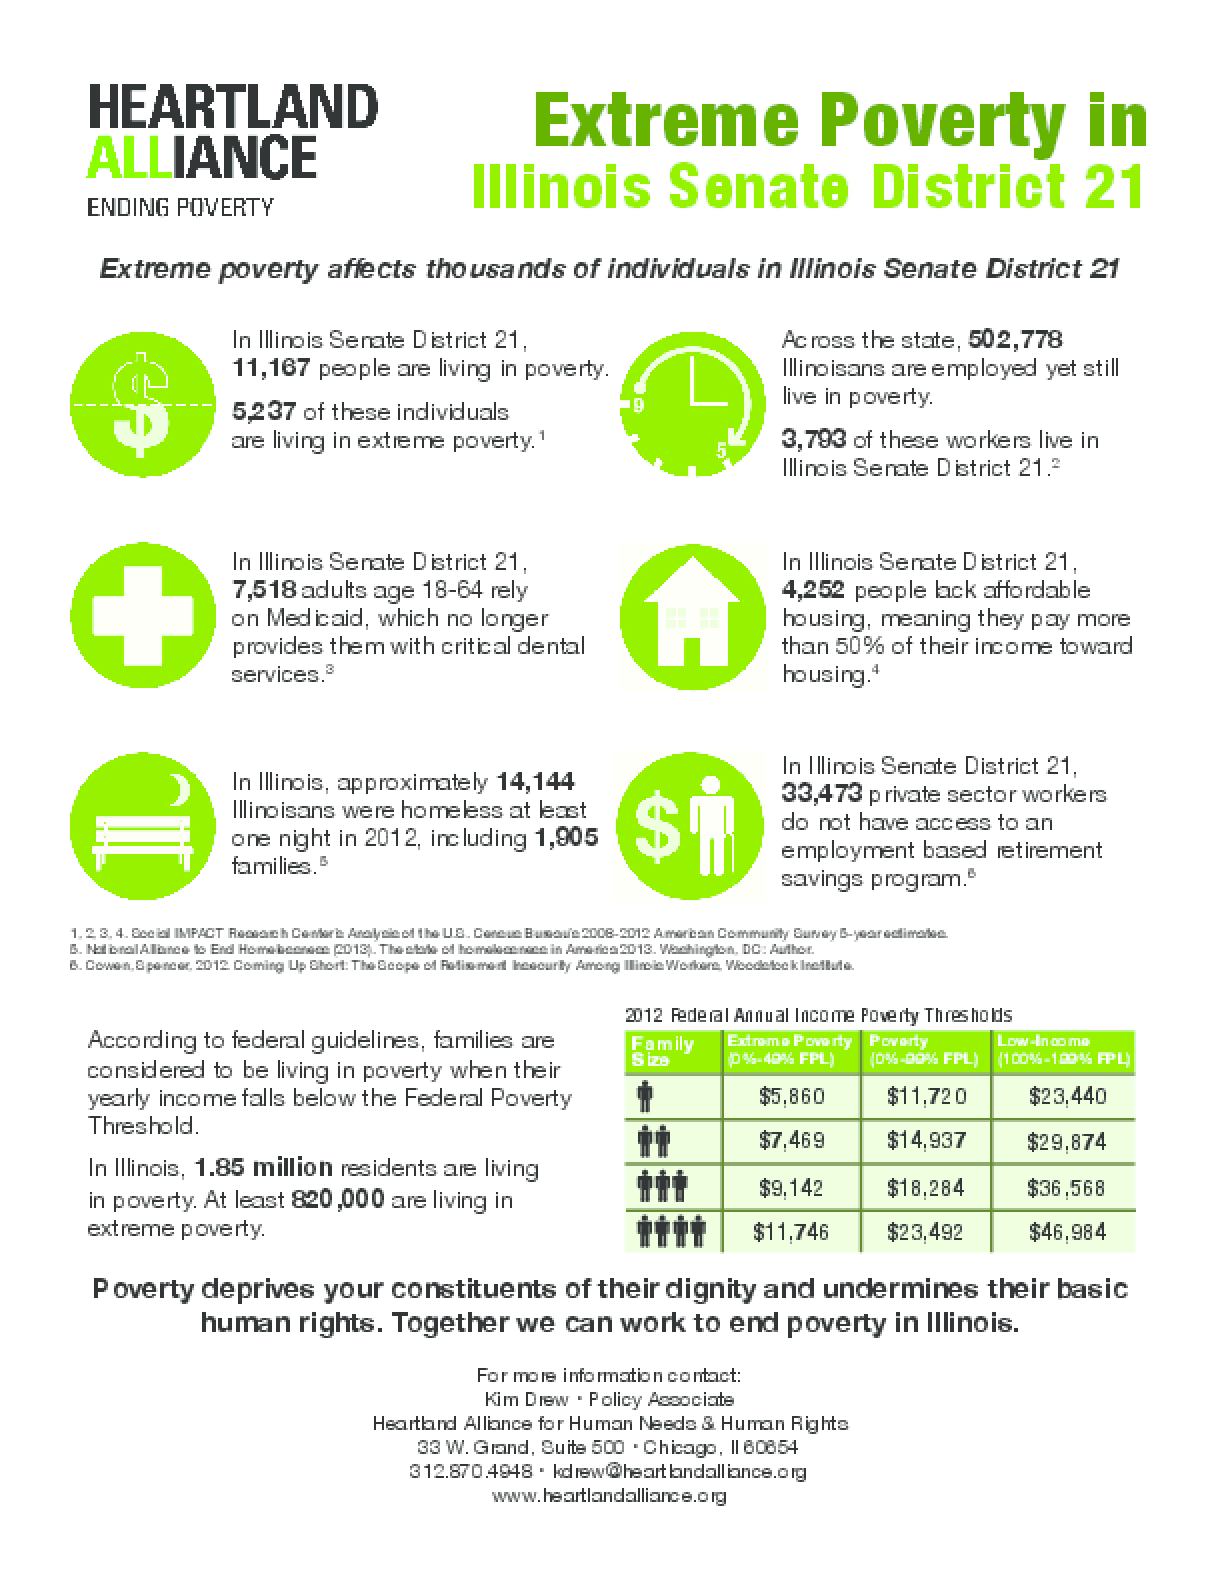 Poverty Fact Sheet for Illinois Senate District 21